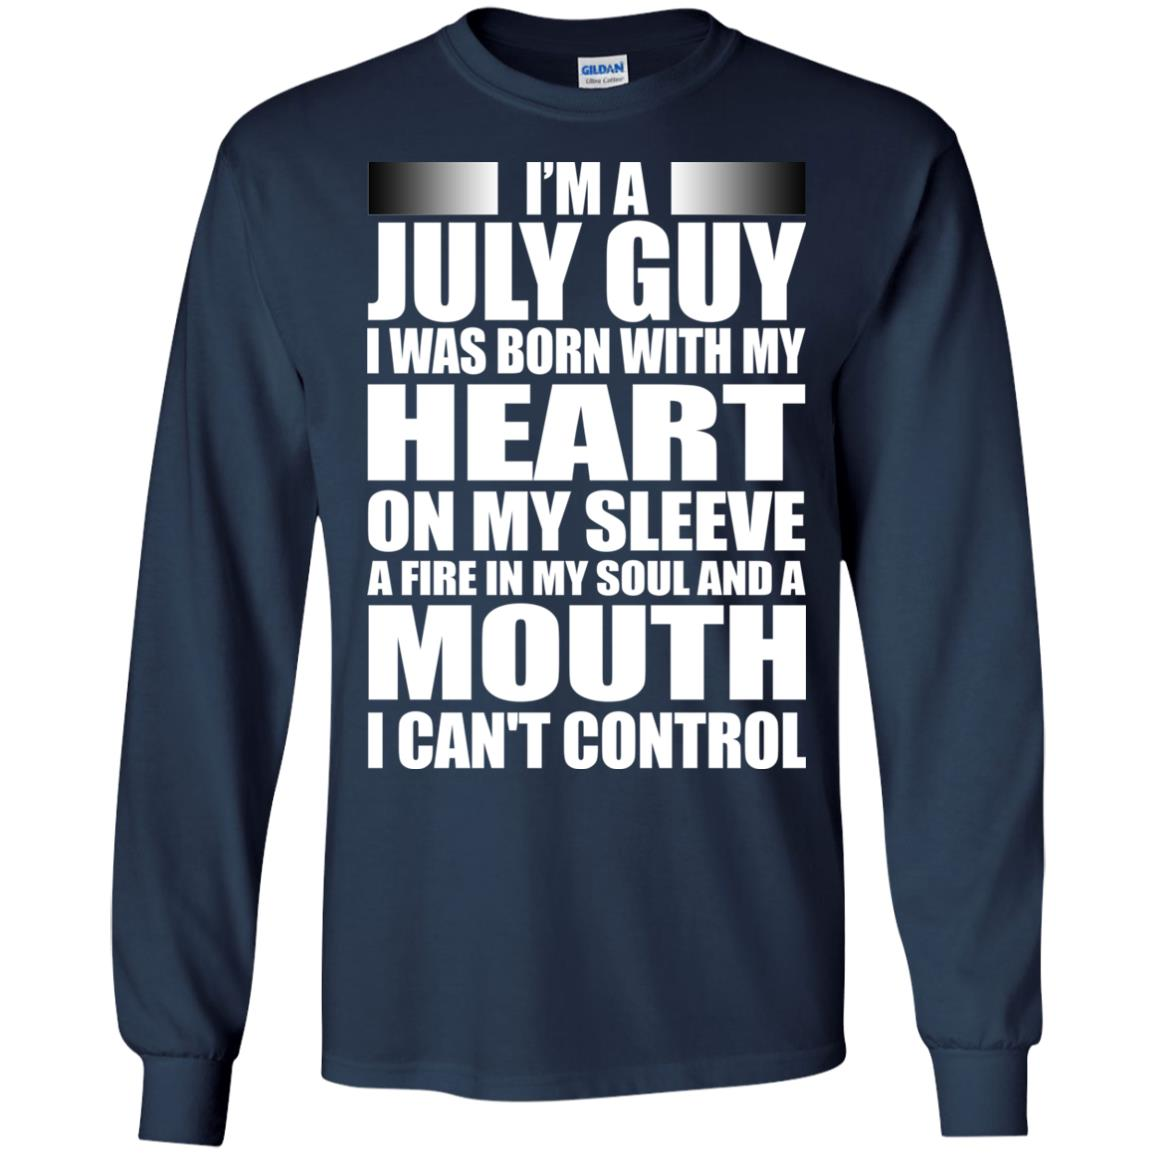 image 914 - I'm a July guy I was born with my heart on my sleeve shirt, hoodie, tank